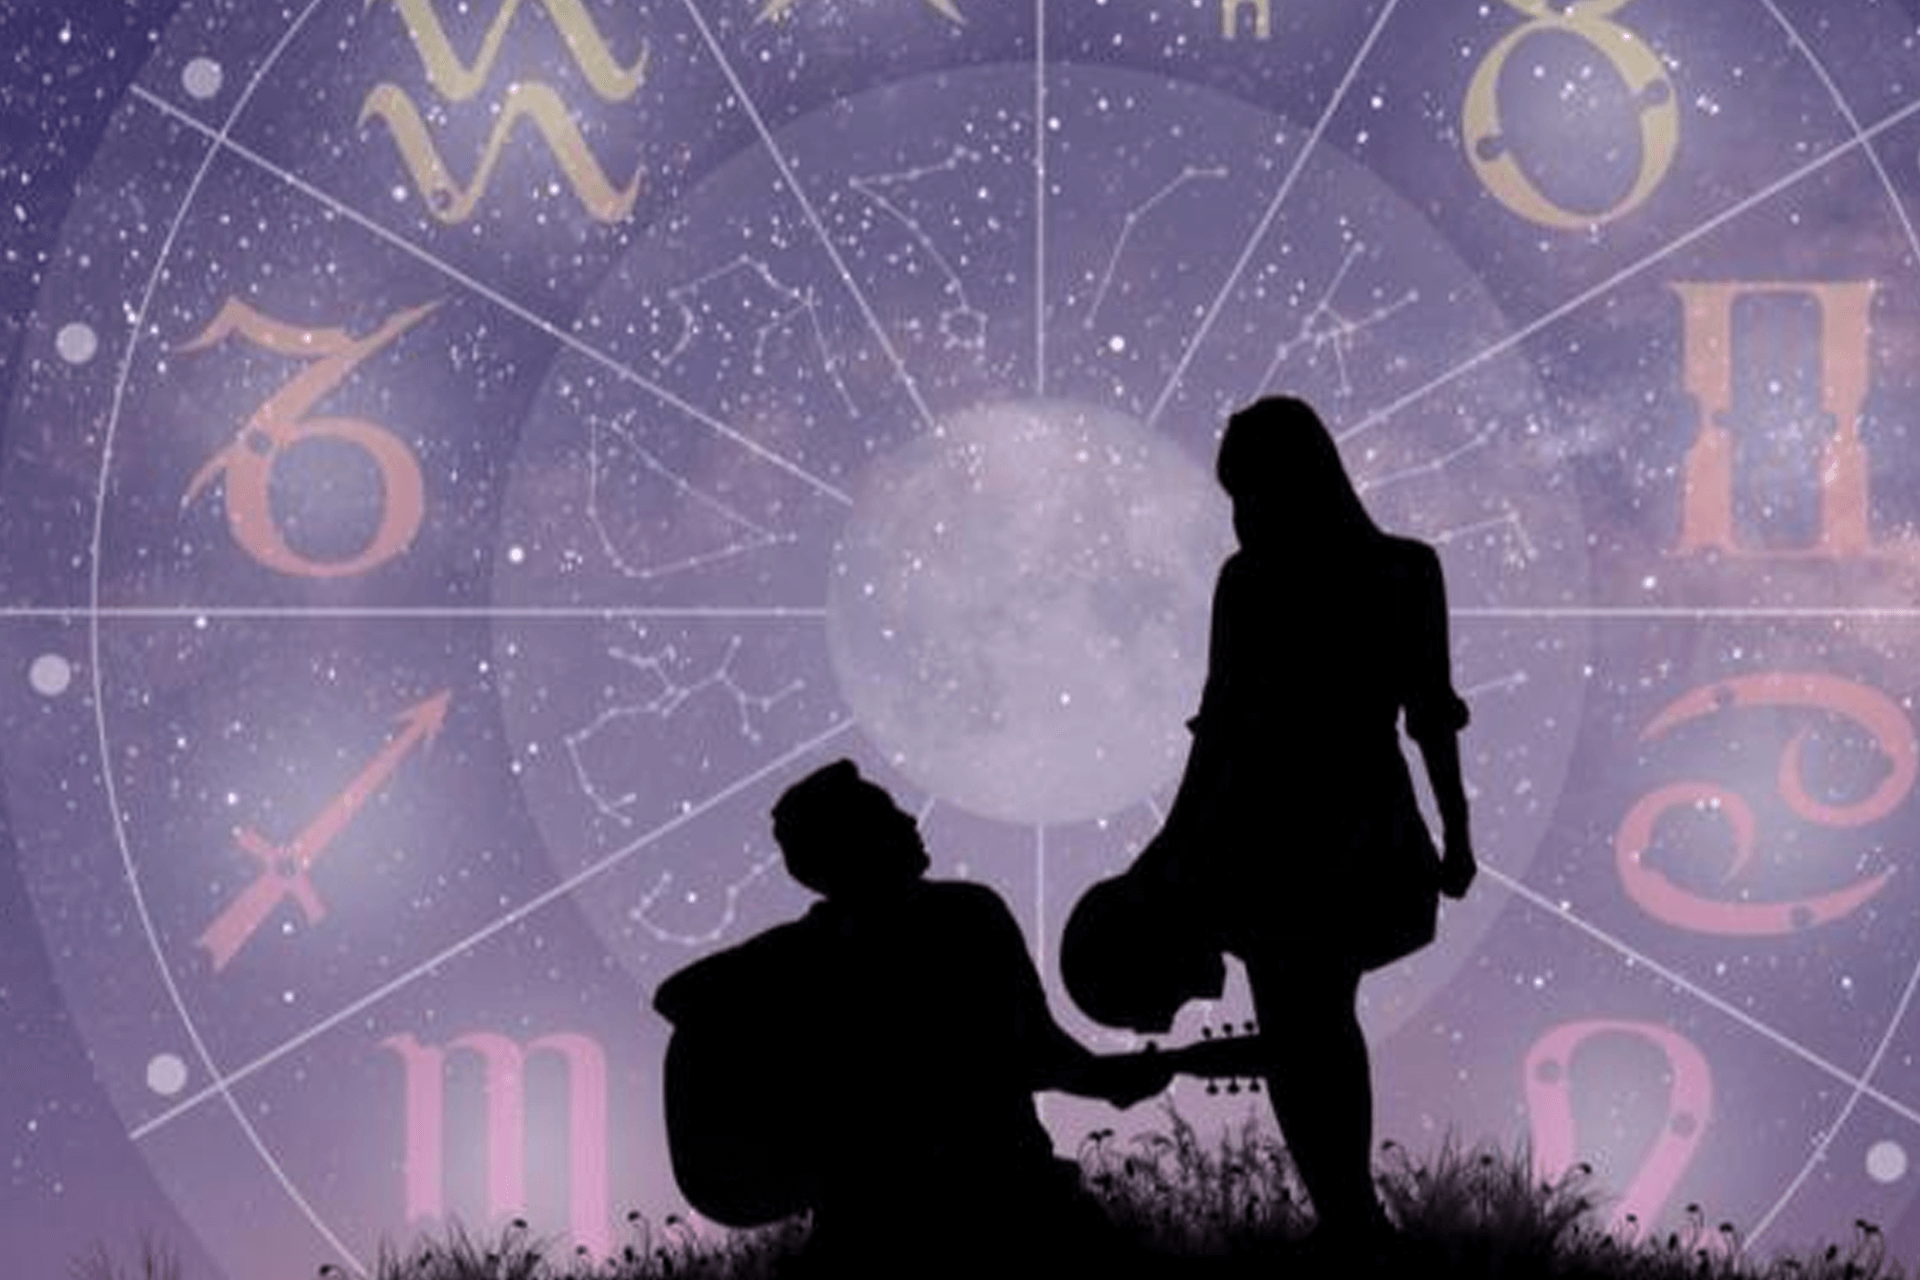 Free Horoscope Prediction Will Always Help You Find Your Loved Ones